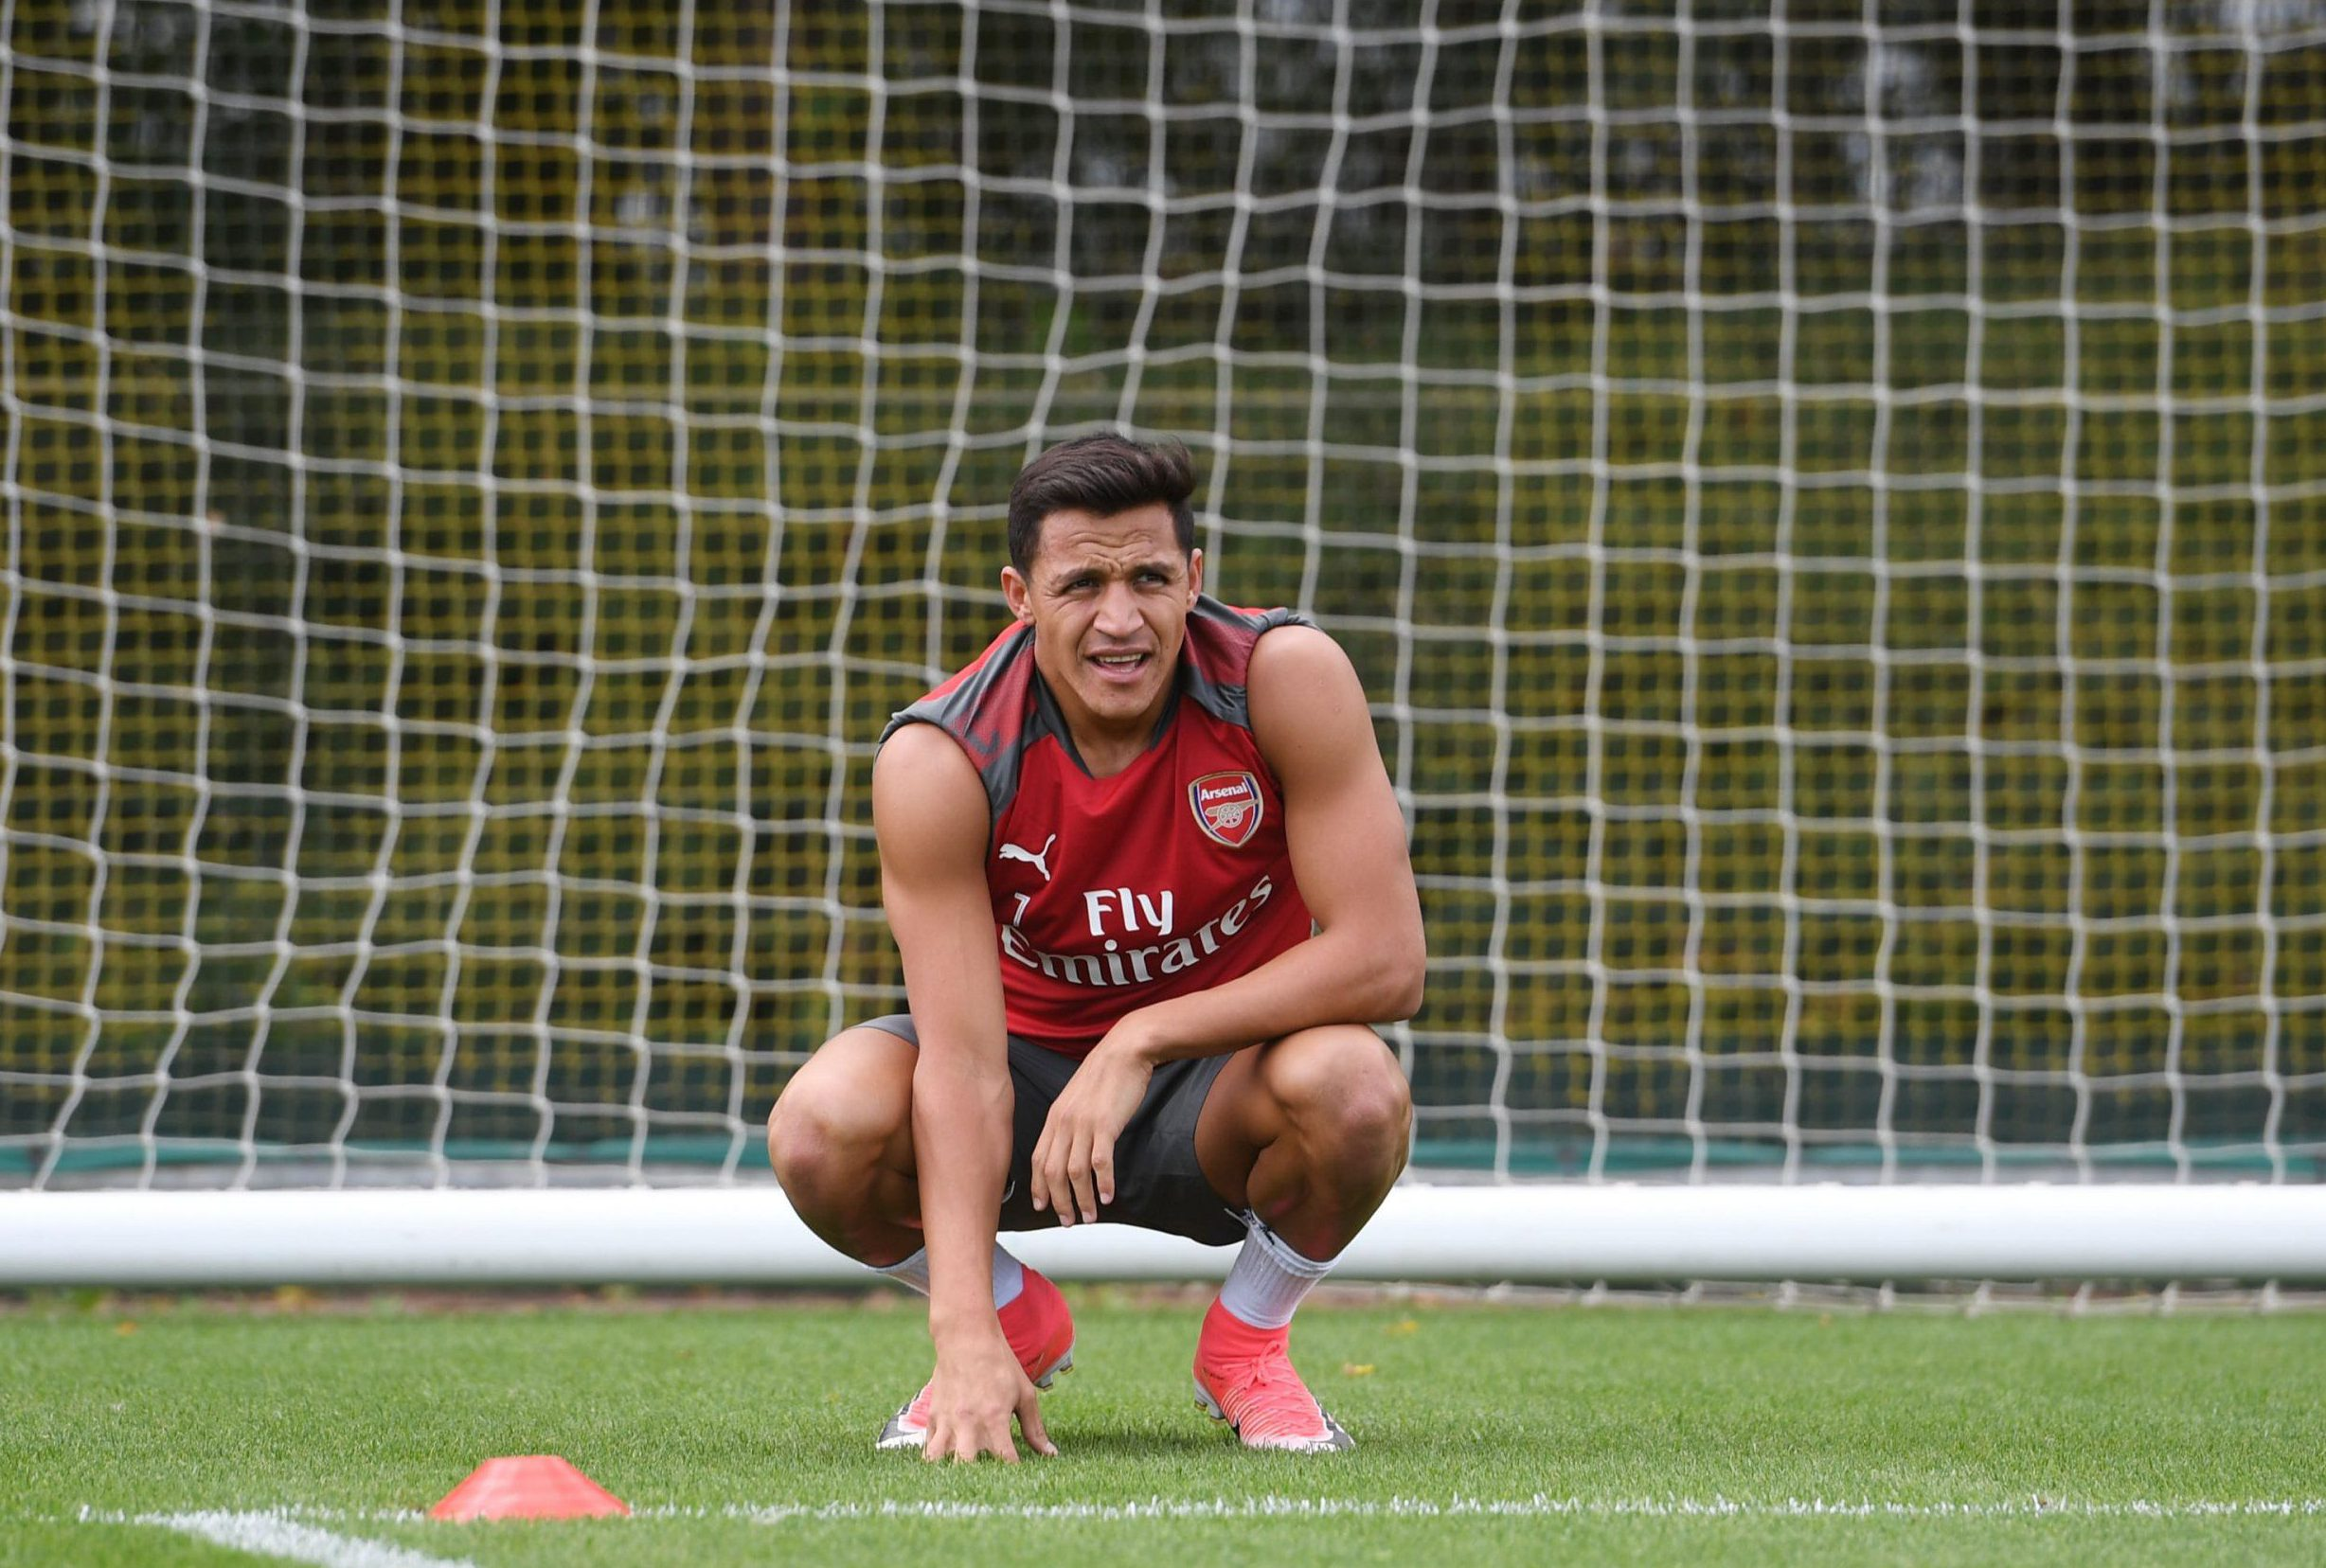 ST ALBANS, ENGLAND - AUGUST 01: Alexis Sanchez of Arsenal during a training session at London Colney on August 1, 2017 in St Albans, England. (Photo by Stuart MacFarlane/Arsenal FC via Getty Images)